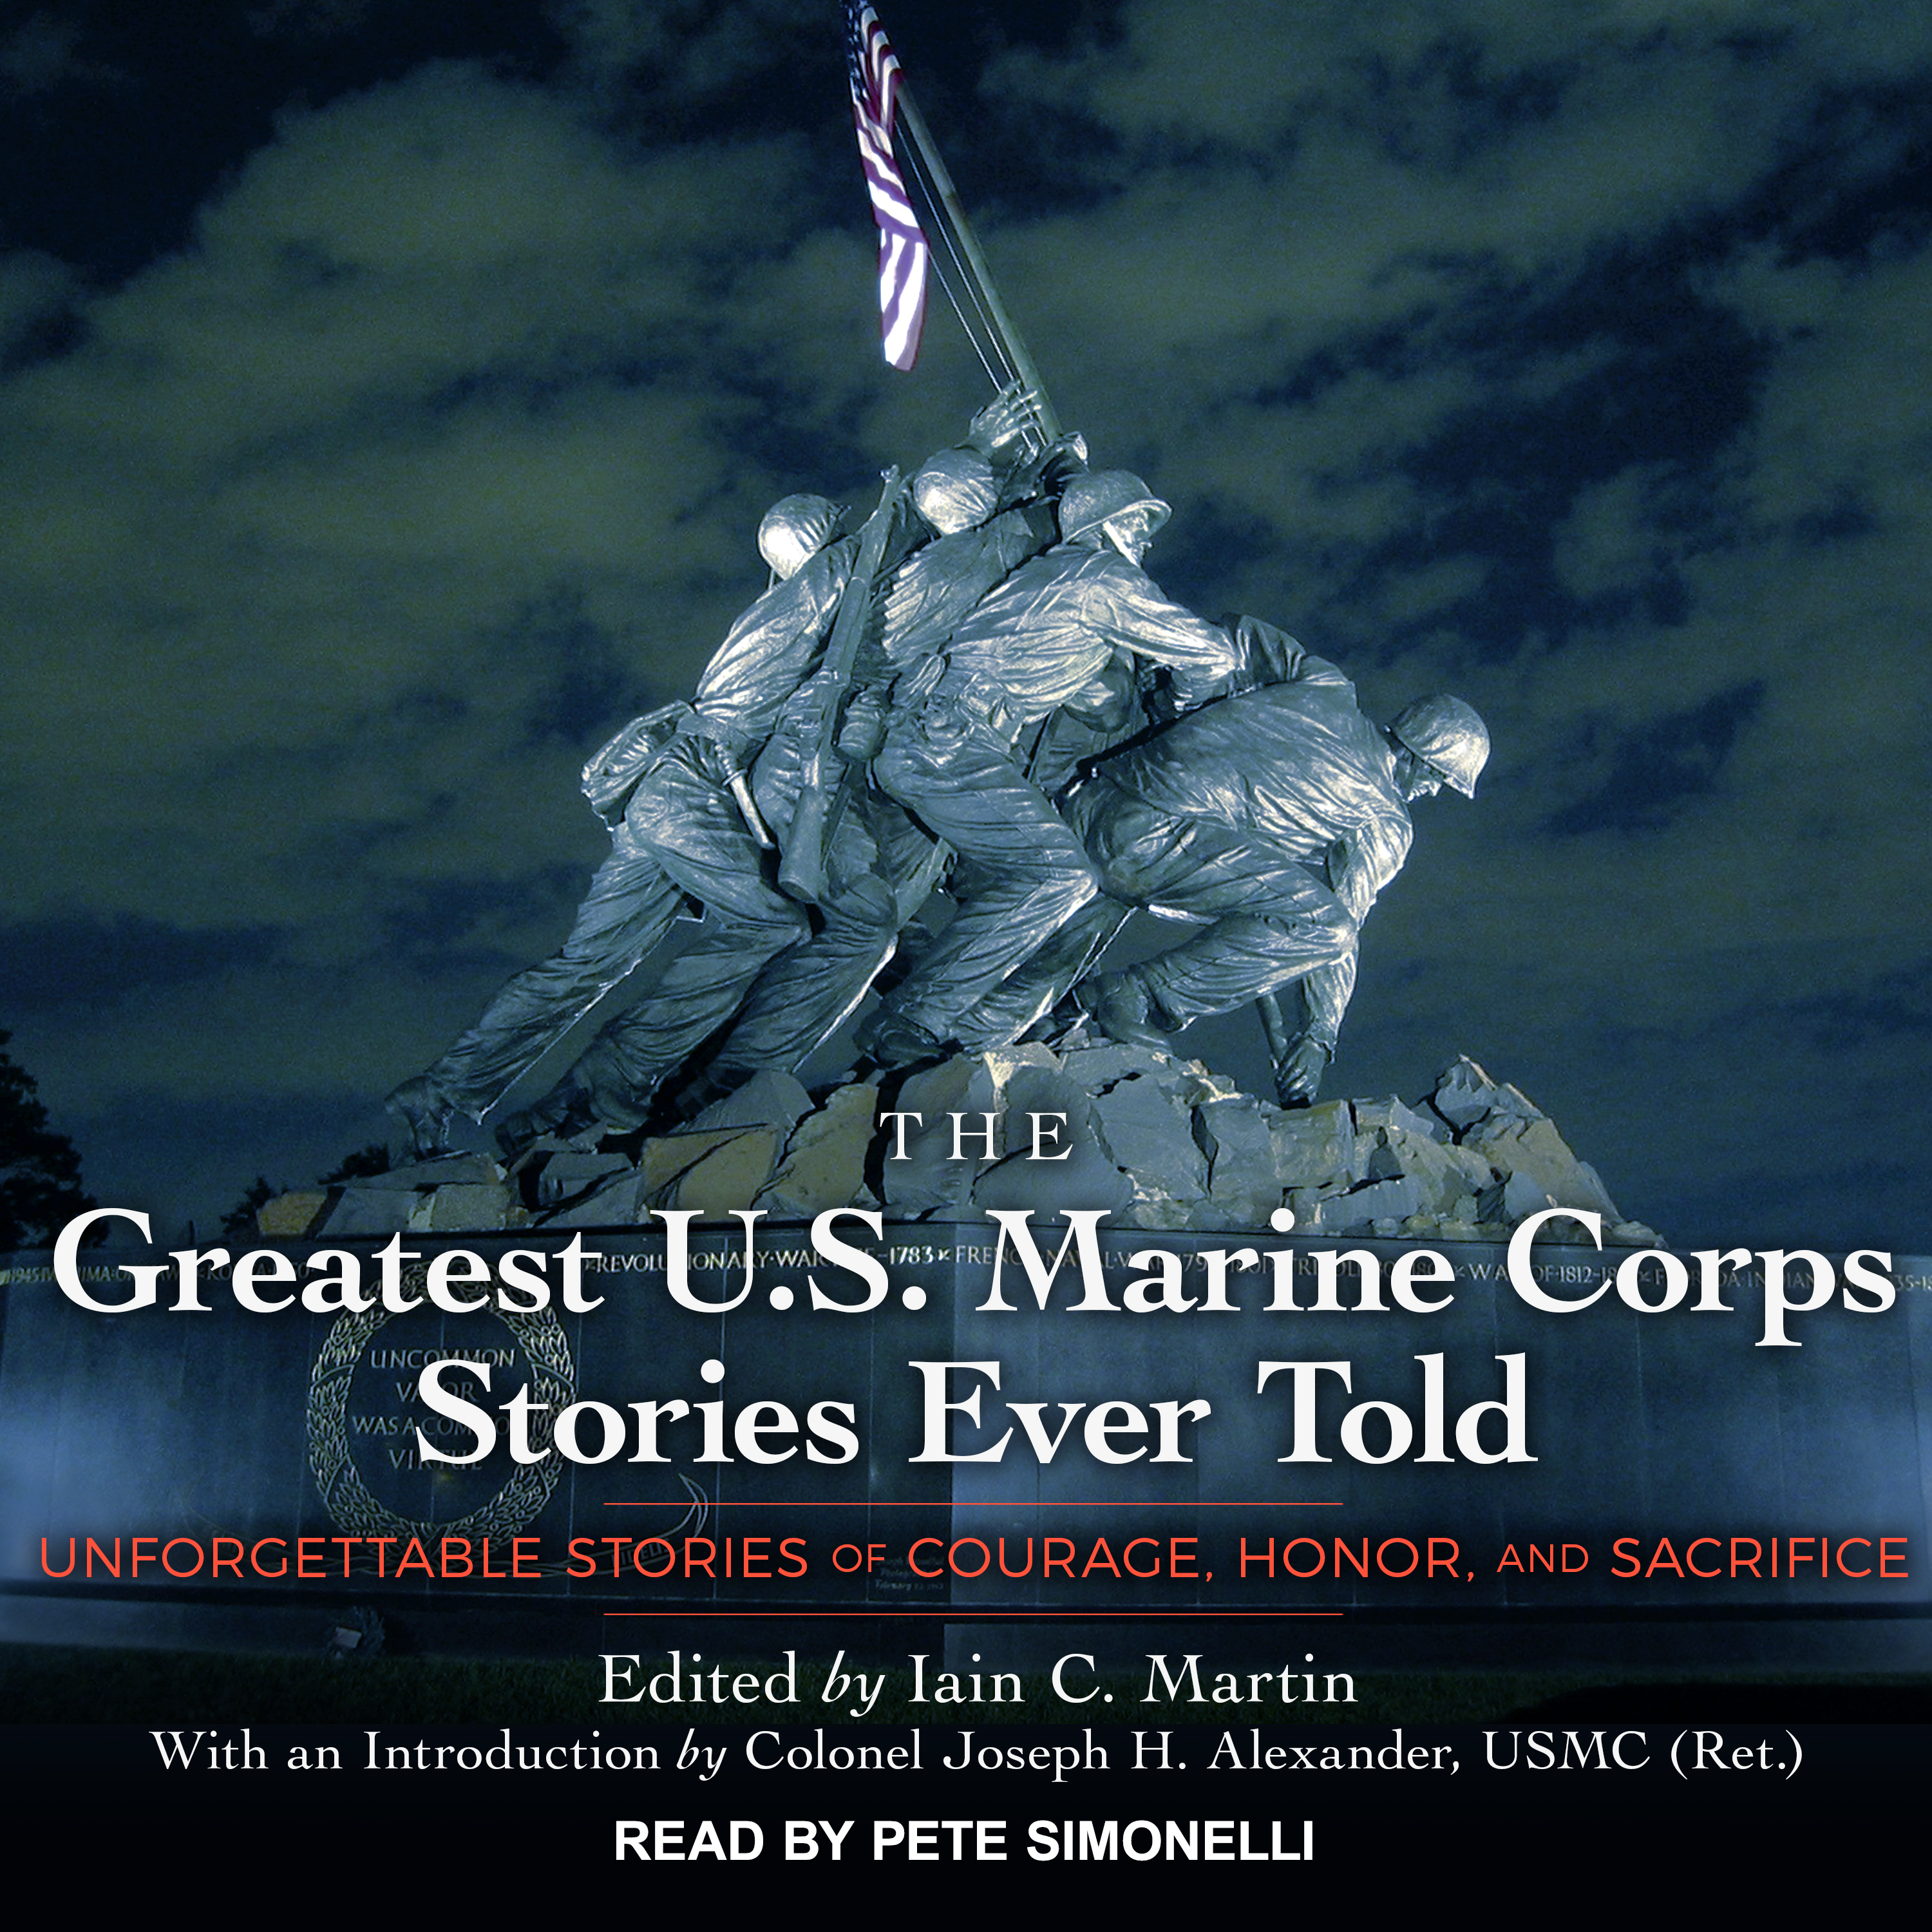 Printable The Greatest U.S. Marine Corps Stories Ever Told: Unforgettable Stories Of Courage, Honor, And Sacrifice Audiobook Cover Art